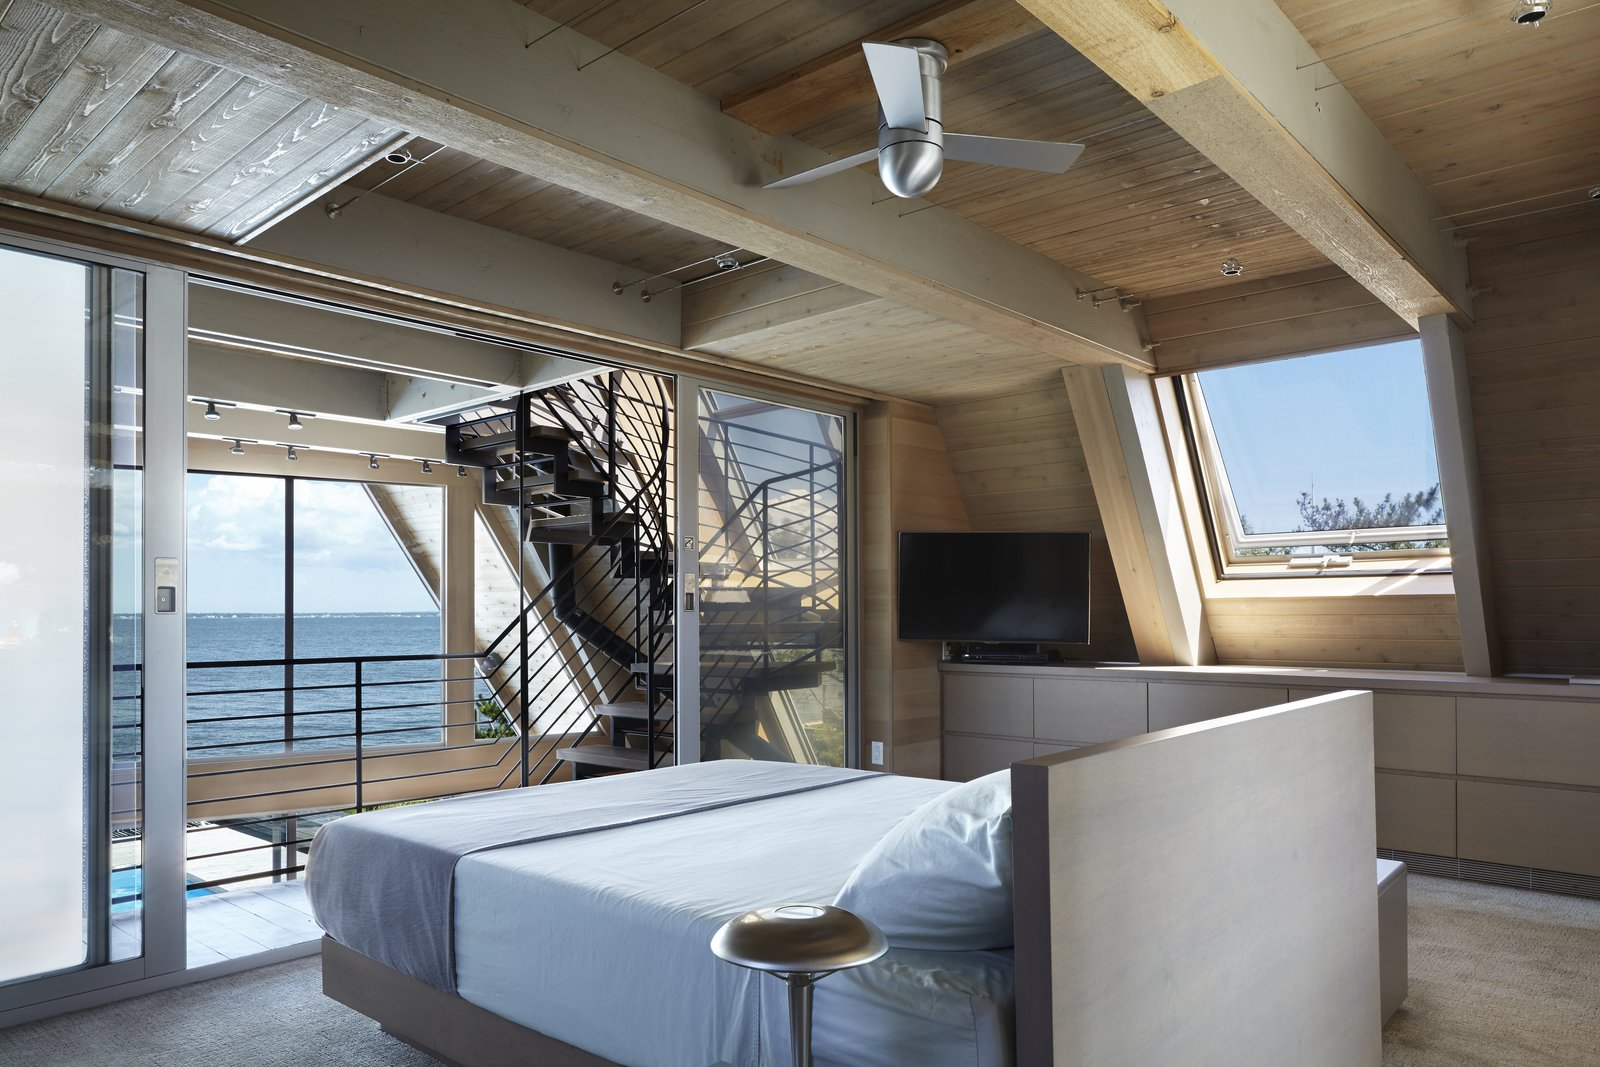 Loft bedroom with ceiling fan and ceiling track lighting.